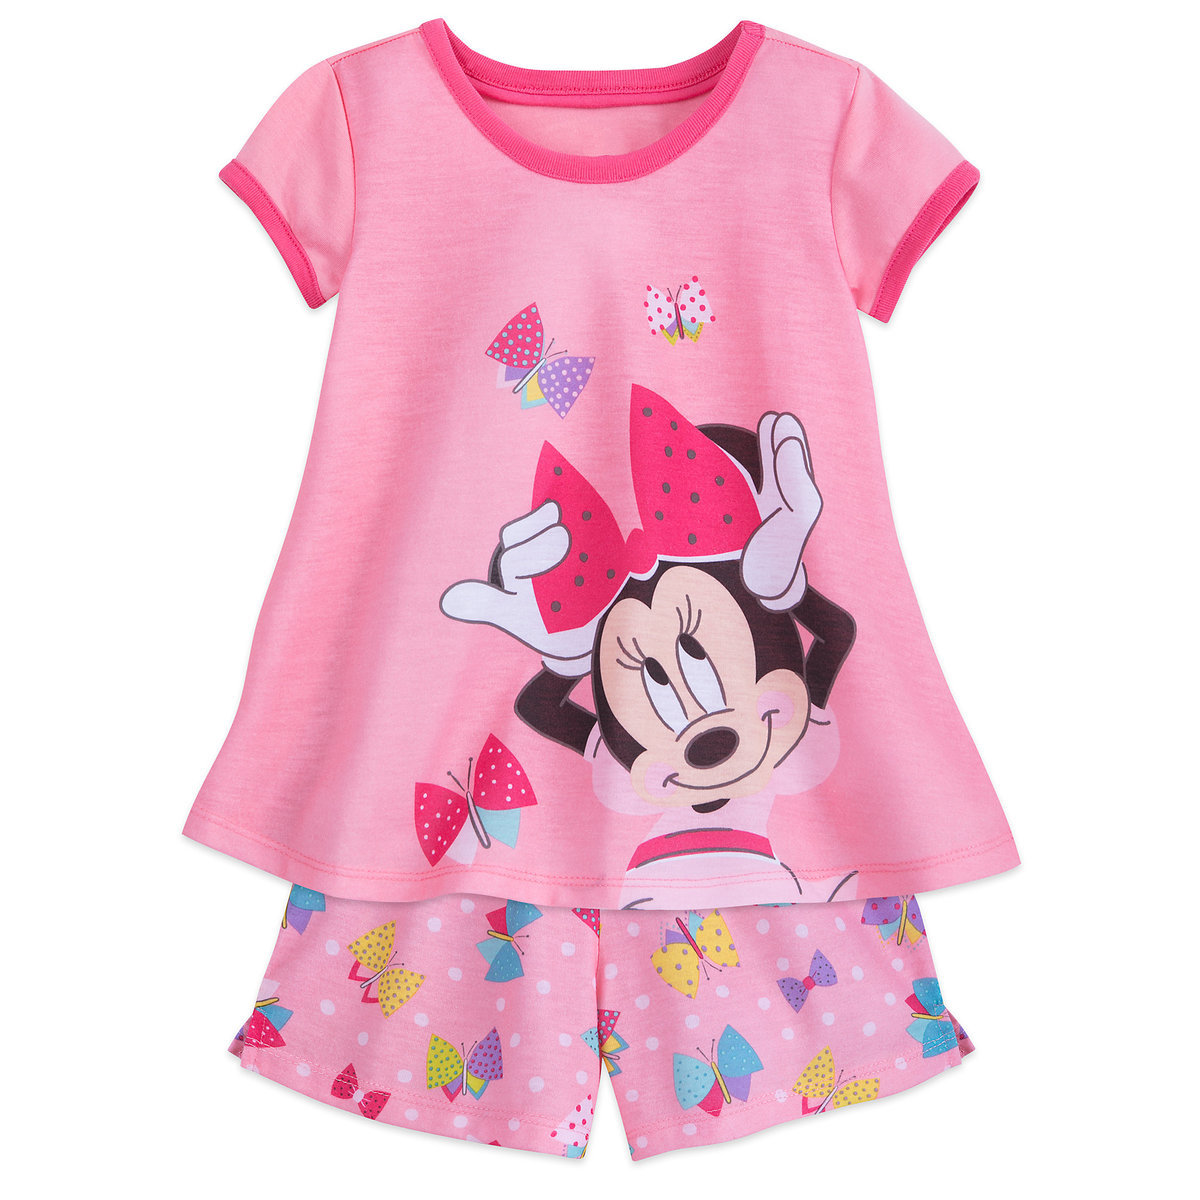 Product Image of Minnie Mouse Shorts Sleep Set for Girls # 1